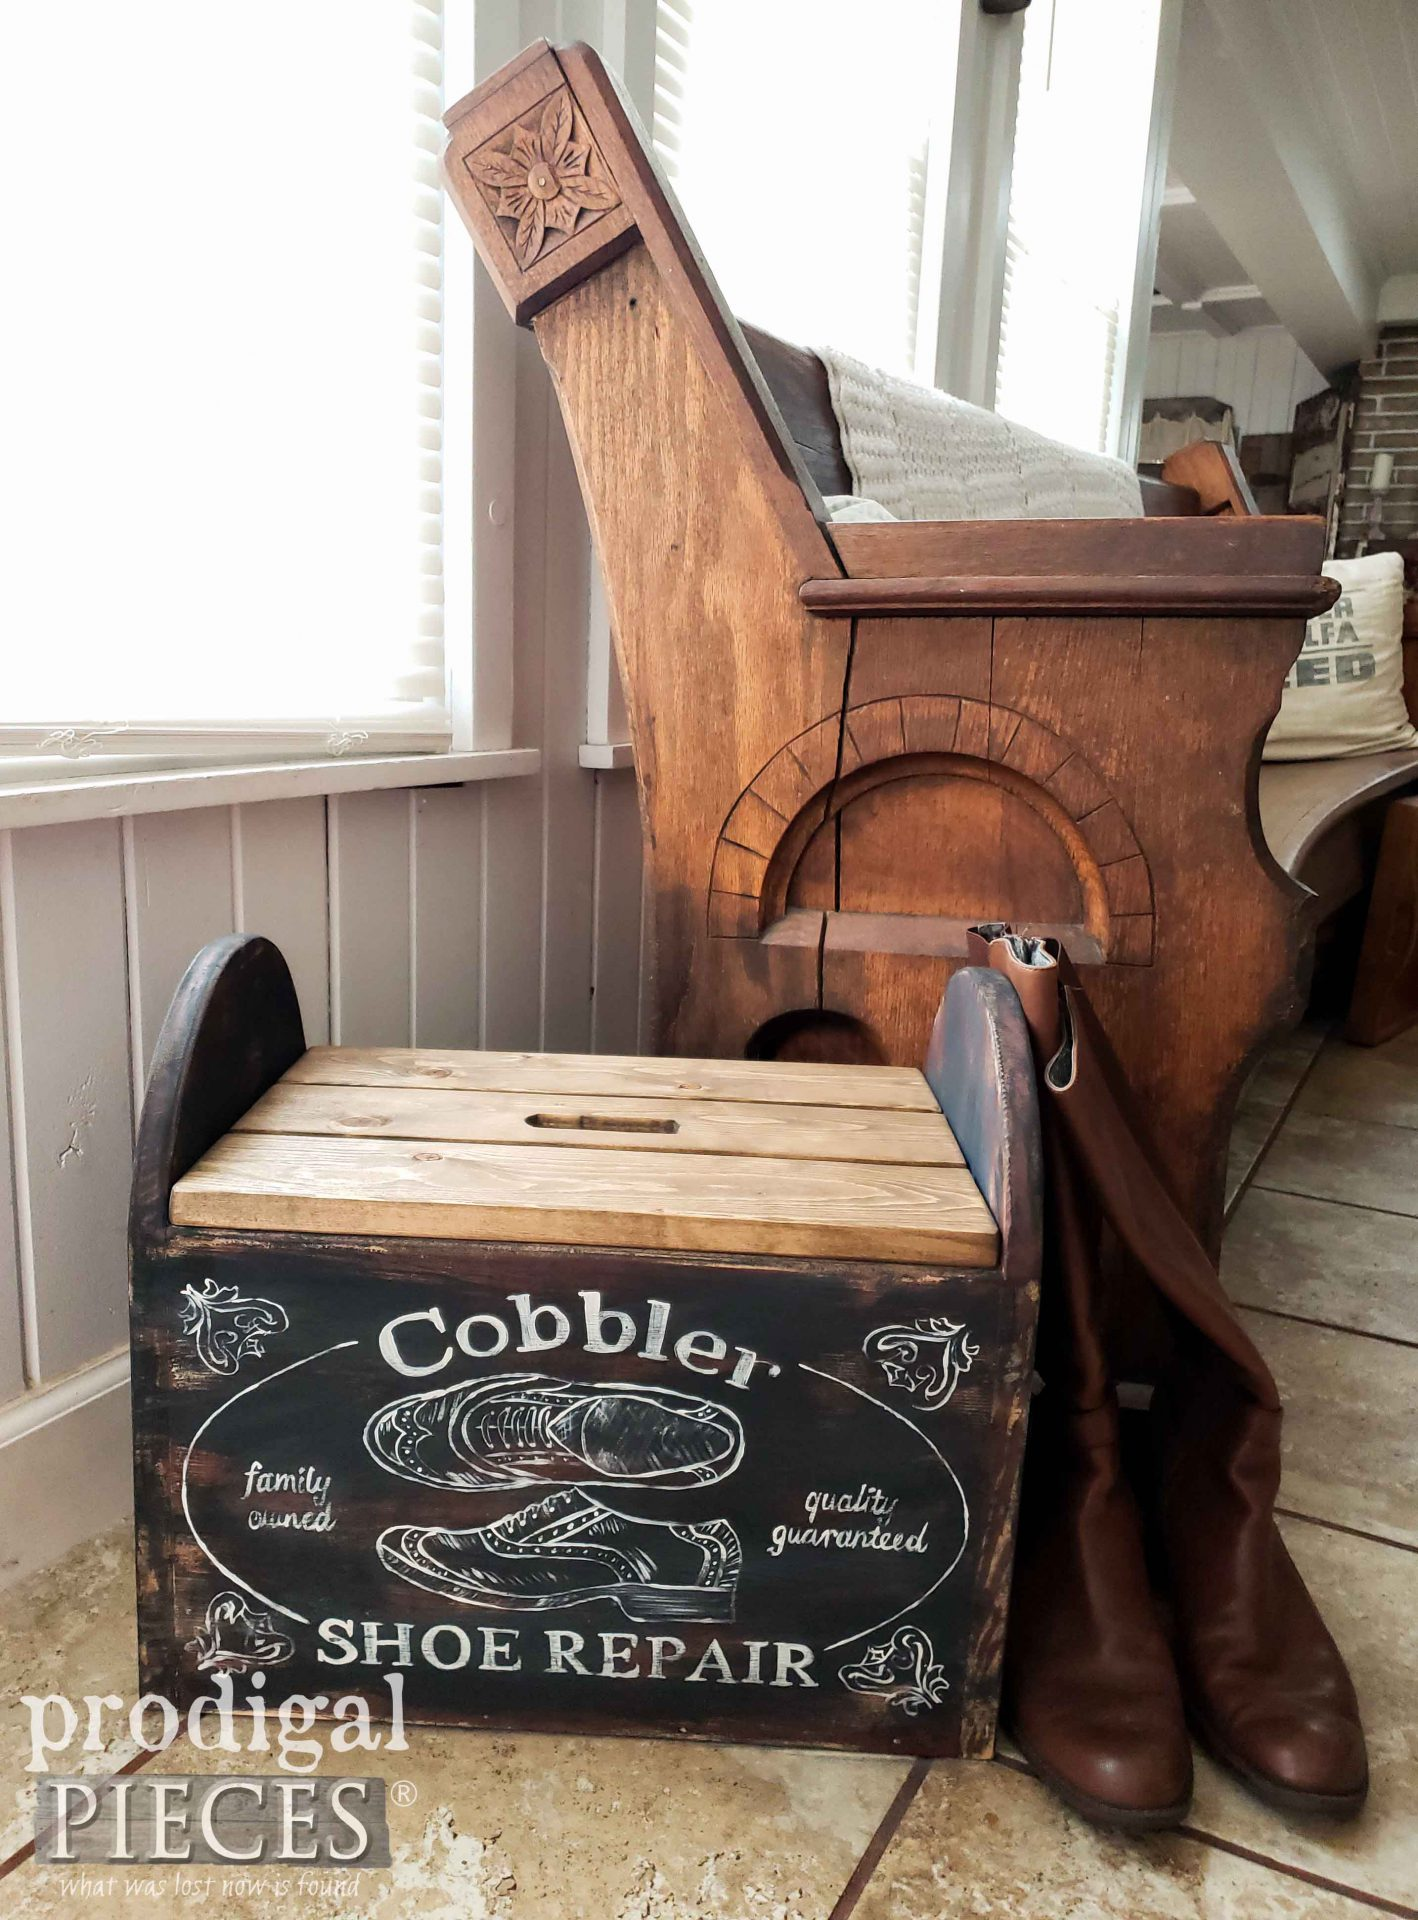 Rustic Farmhouse Cobbler Bin from Thrifted Find by Larissa of Prodigal Pieces | prodigalpieces.com #prodigalpieces #farmhouse #diy #home #storage #homedecor